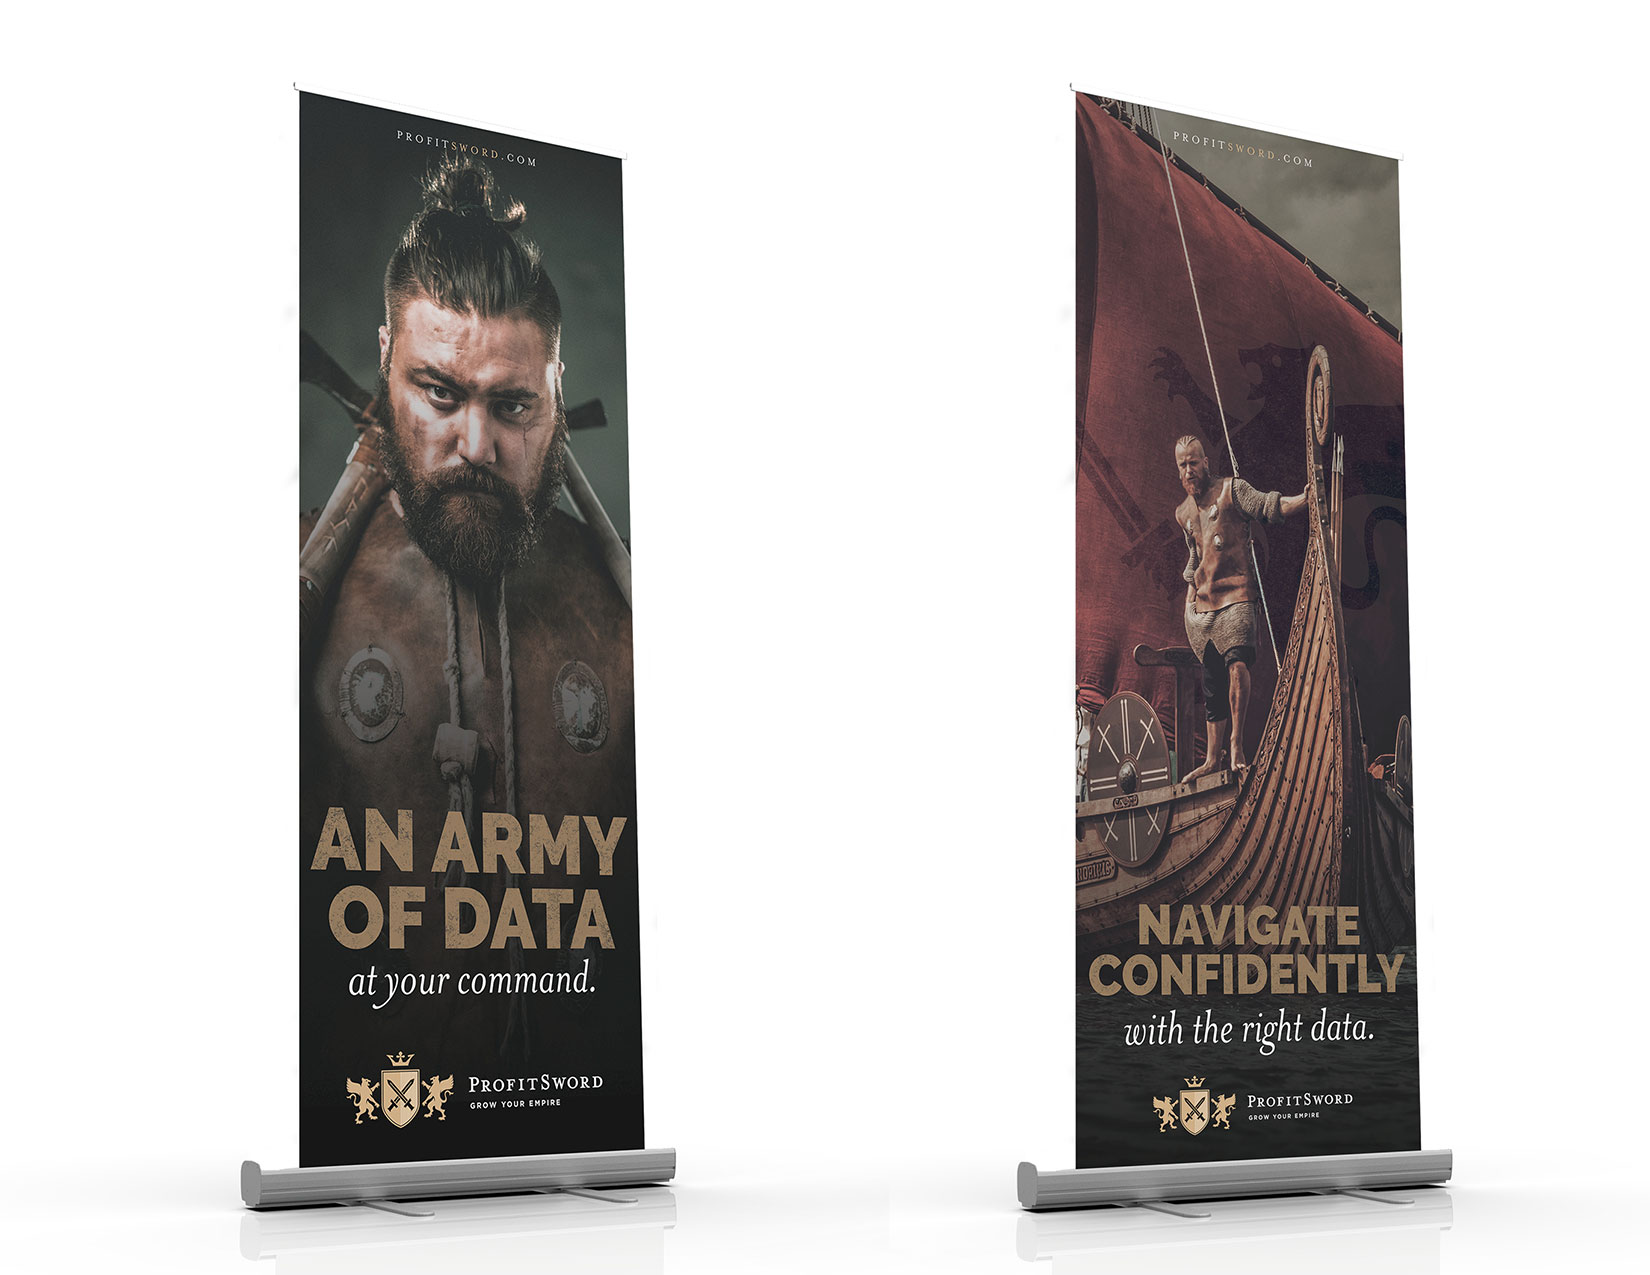 18_PRS_042_PopUp_Banners_R0V02.jpg